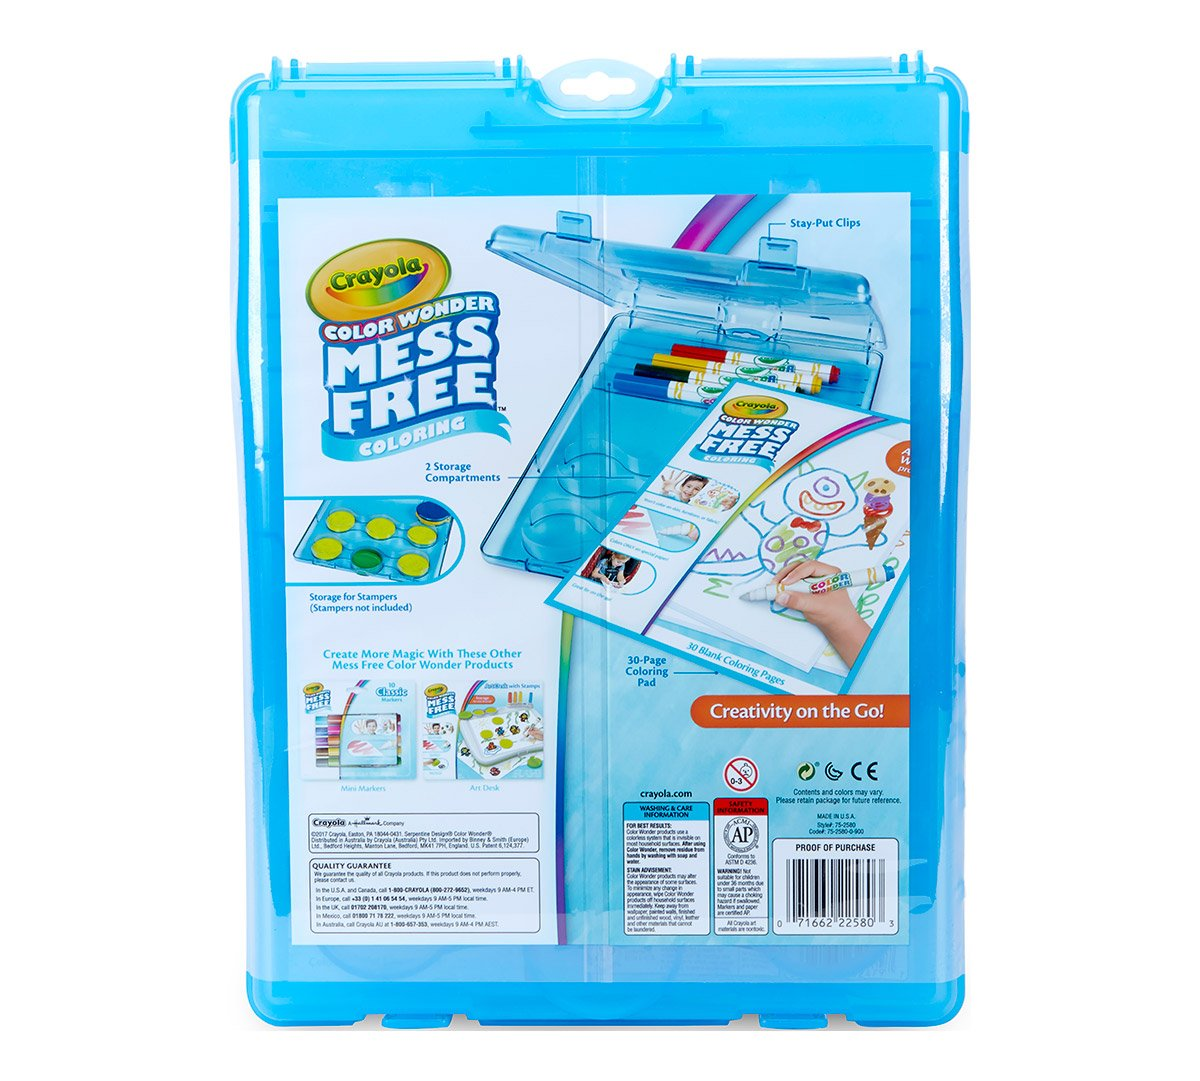 Amazon.com: Crayola Color Wonder Mess-Free Coloring, Stow & Go ...